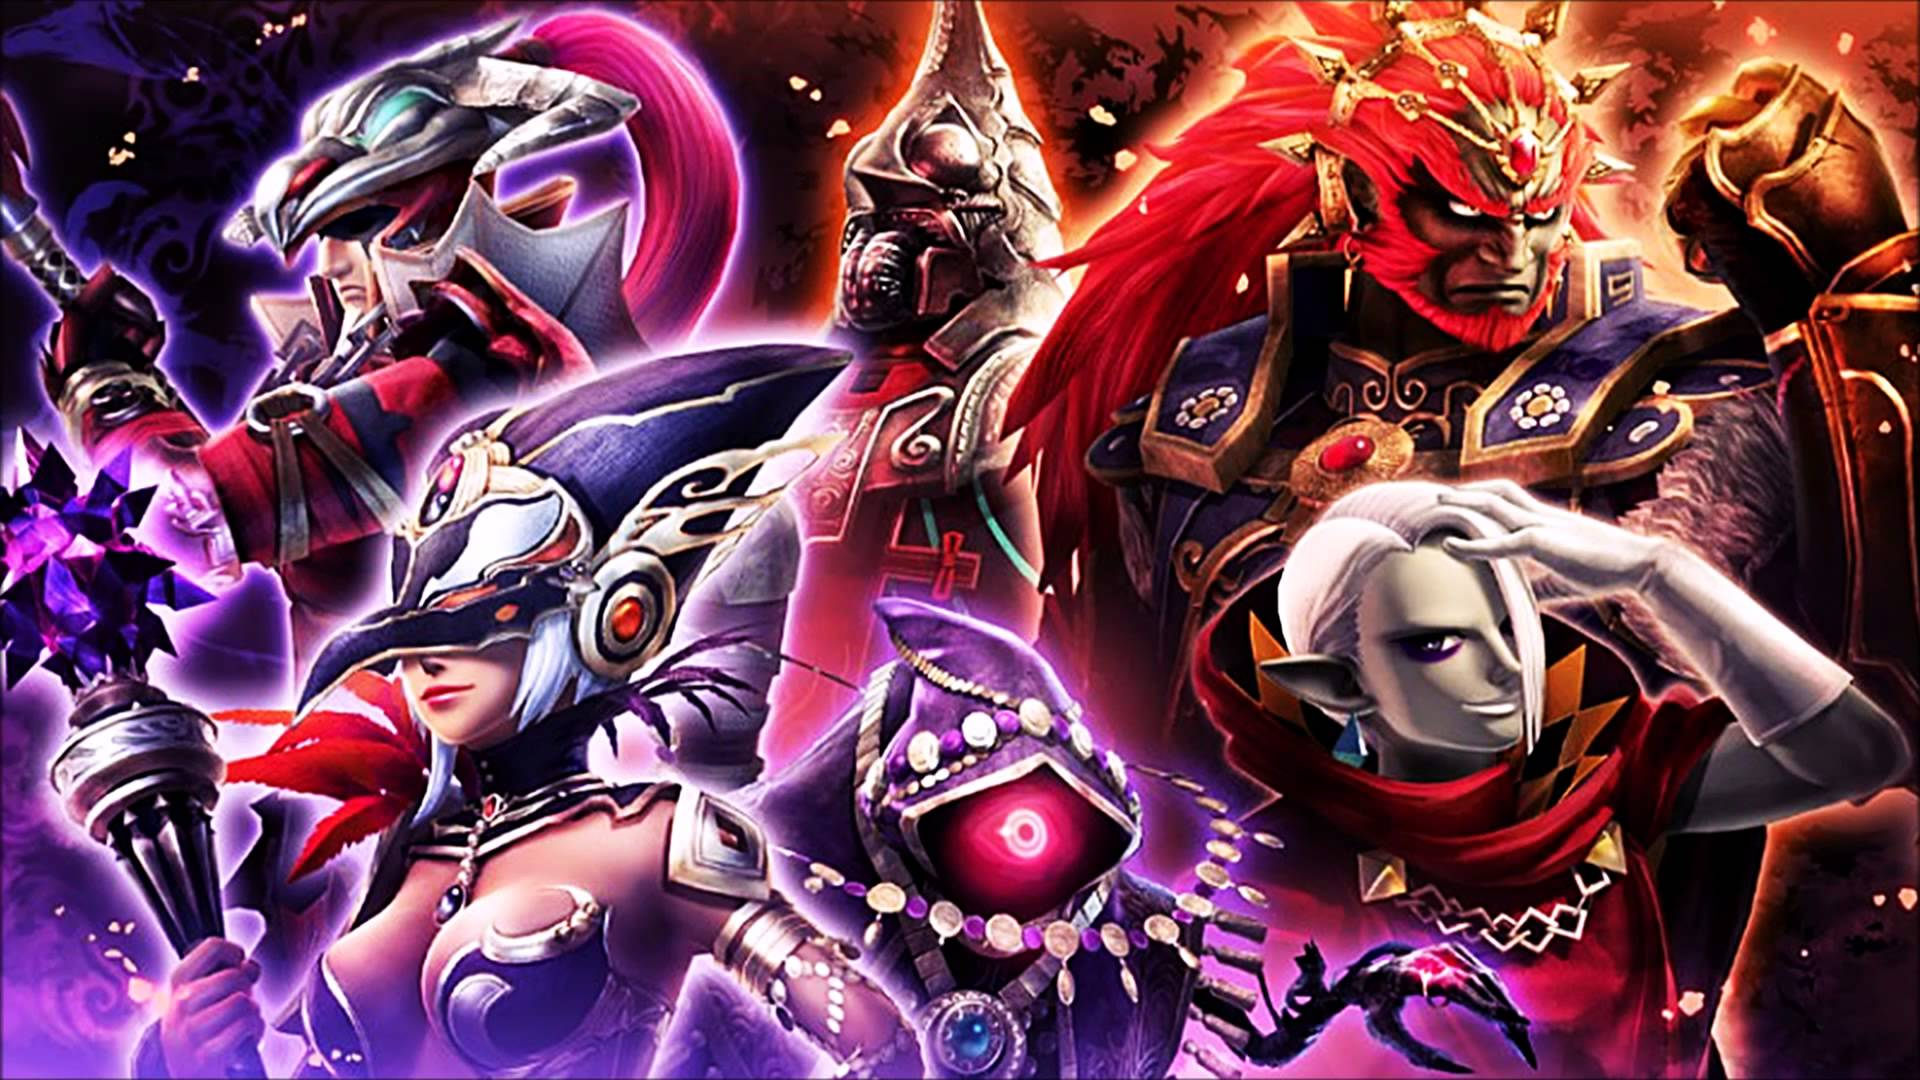 13 Hyrule Warriors Ostsilent Guardianstemple Of The Sacred Sword 829 Guardian Of The Temple Painting Wallpaper